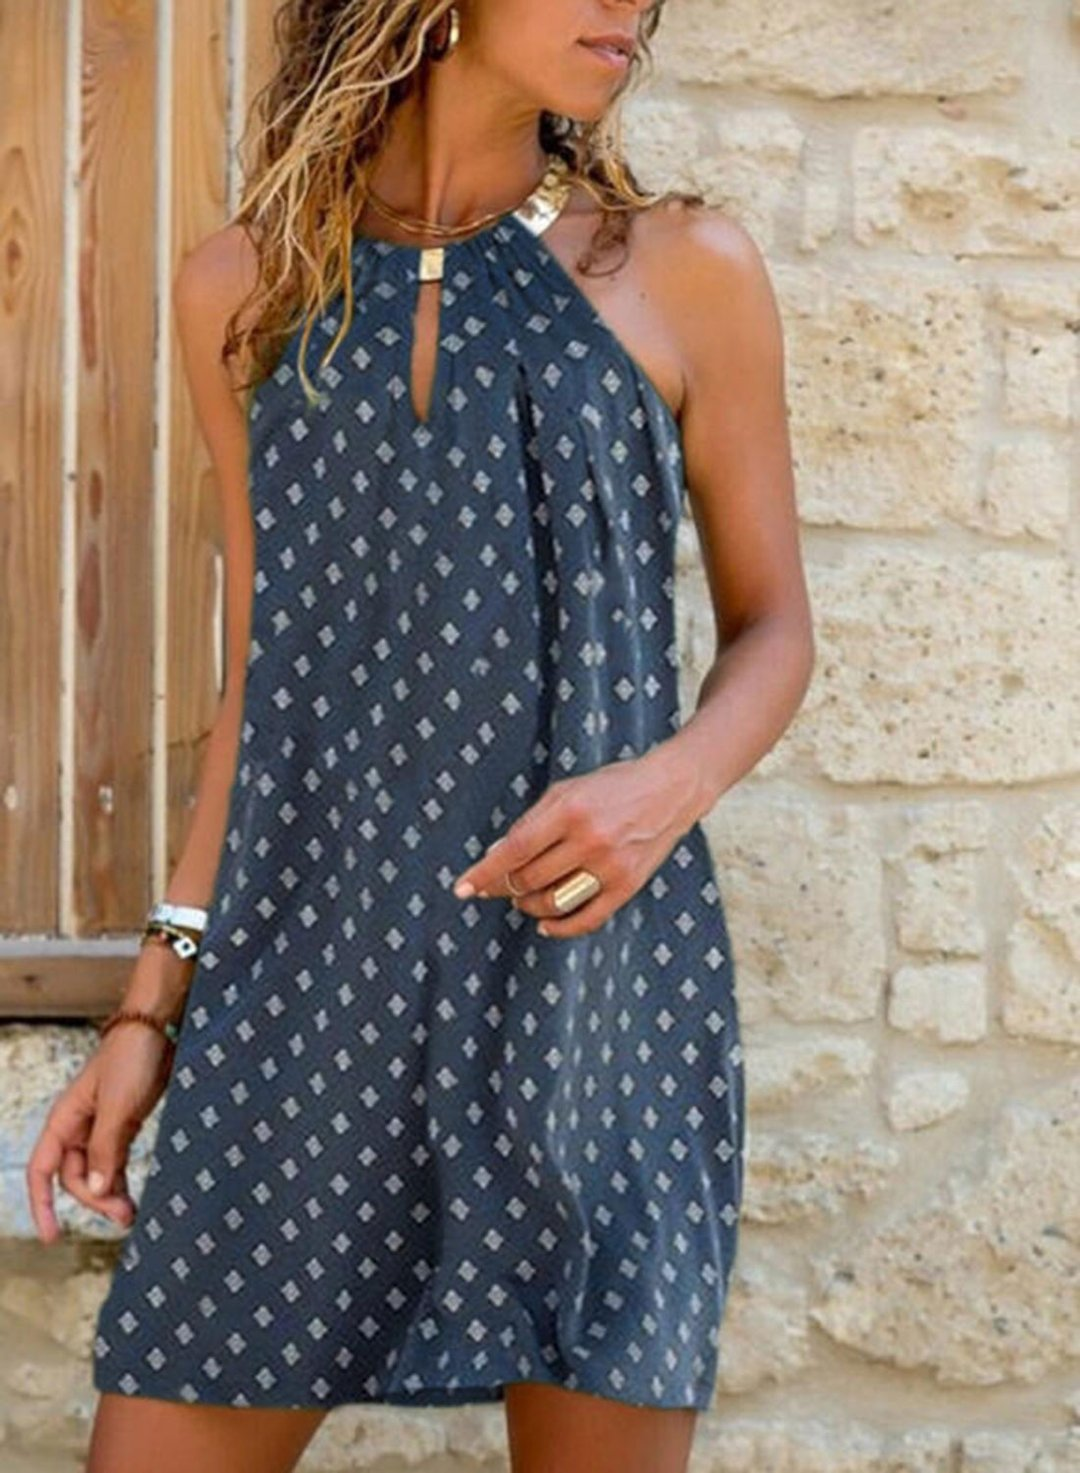 Blue Women's Dress Polka Dot A-line Halter Sleeveless Cold Shoulder Vacation Summer Casual Mini Dress LC225531-5